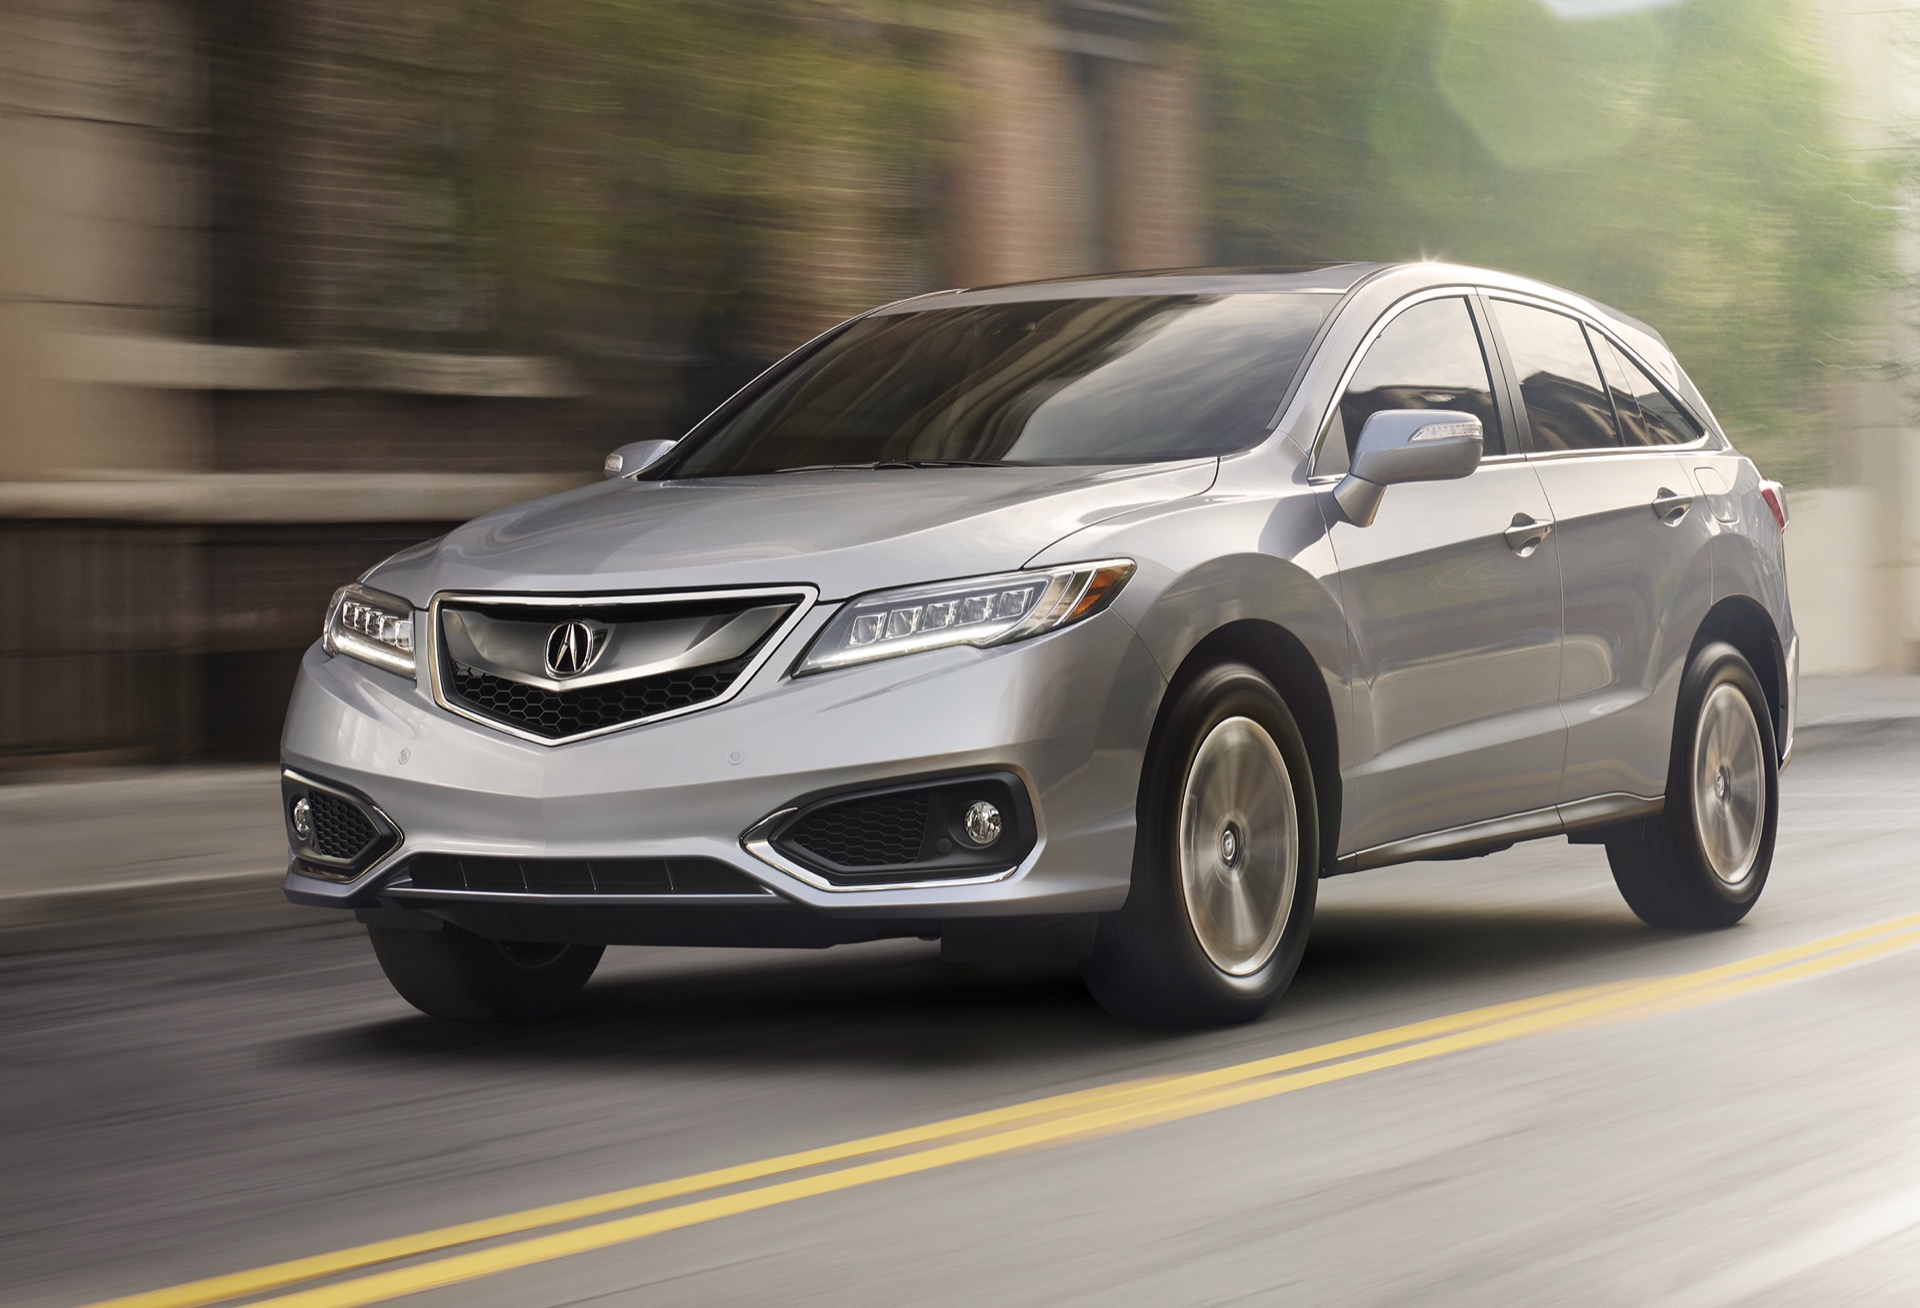 2016 acura rdx features review the car connection. Black Bedroom Furniture Sets. Home Design Ideas